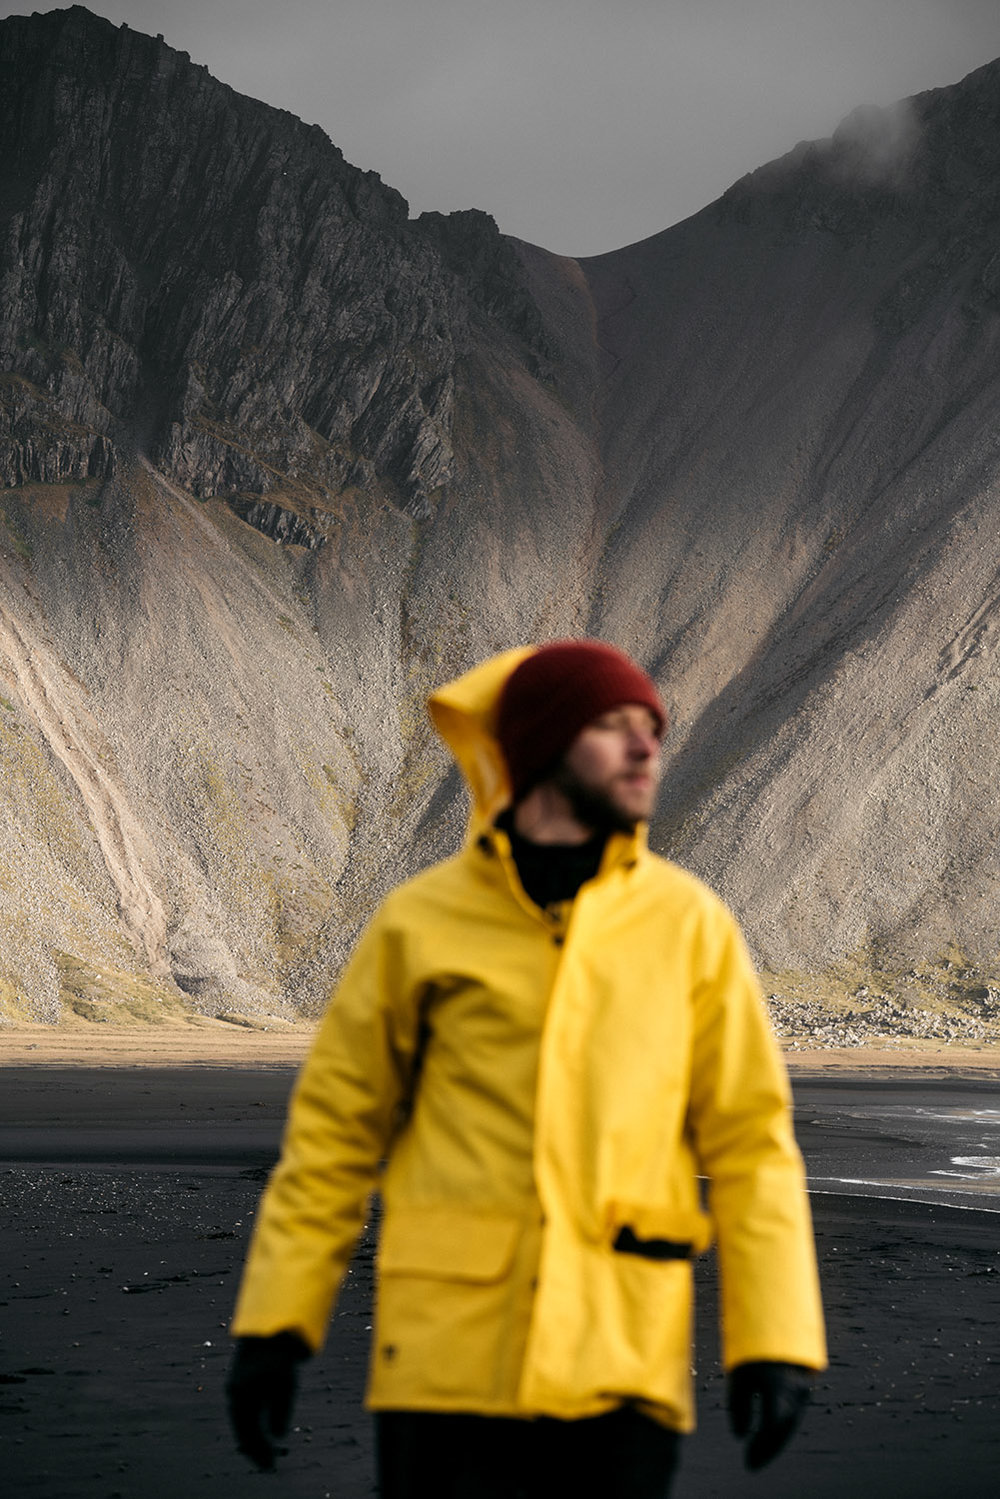 Lifestyle photography - Man in Iceland